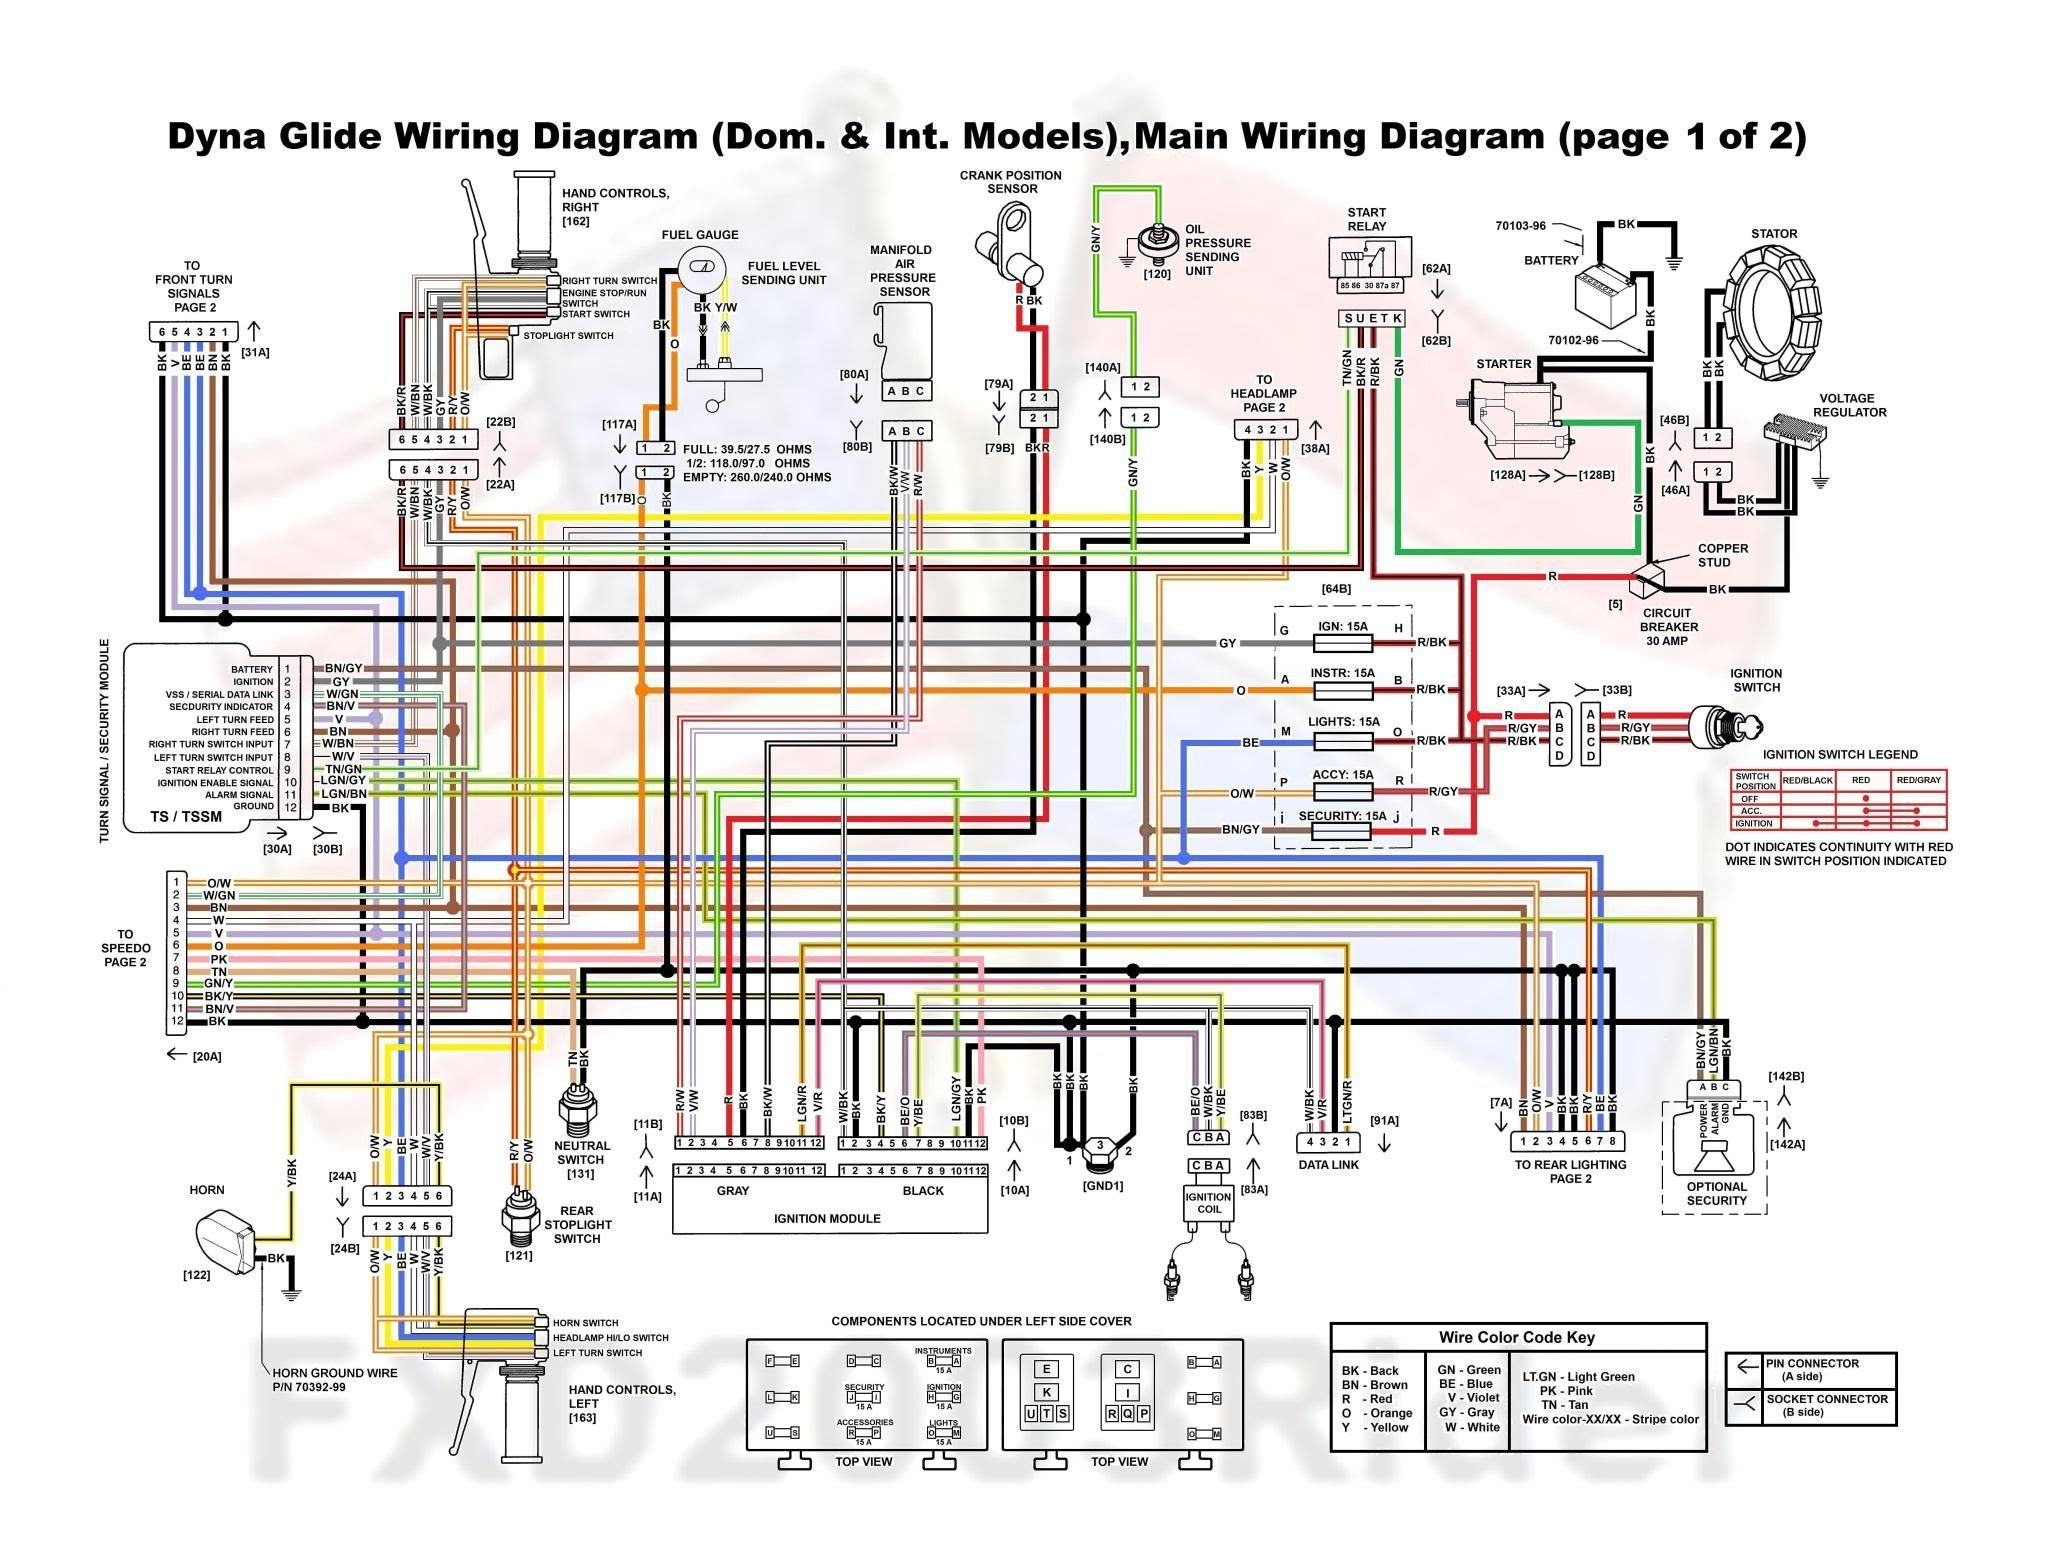 Basic Wiring Diagram For Harley Davidson | WiringDiagram.org ... on